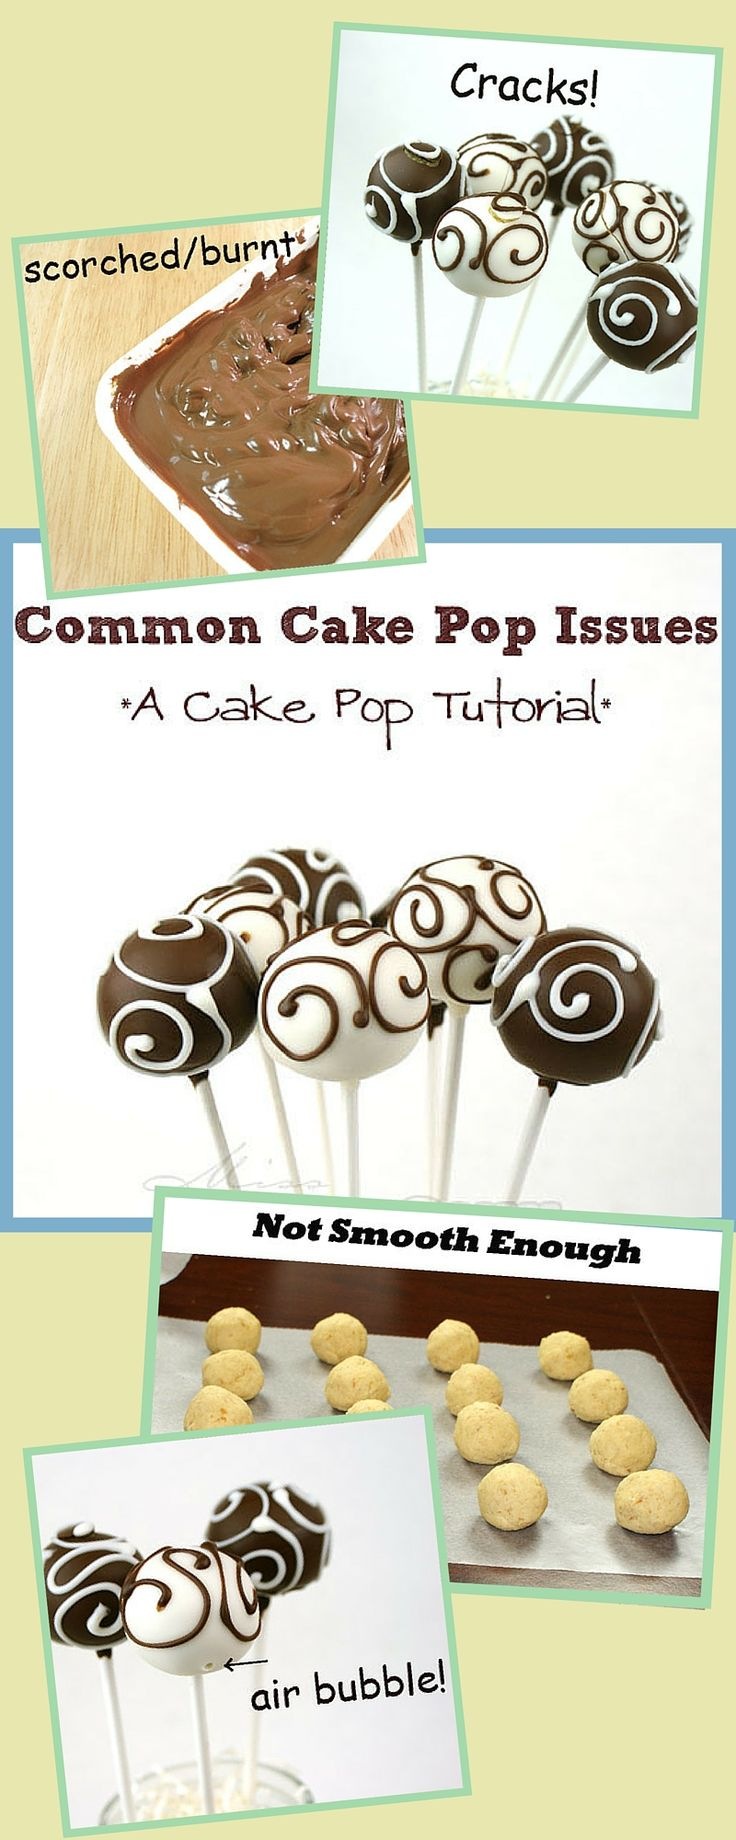 Common Cake Pop Issues & Problems - super helpful cake pop tutorial! blog.candiquik.com